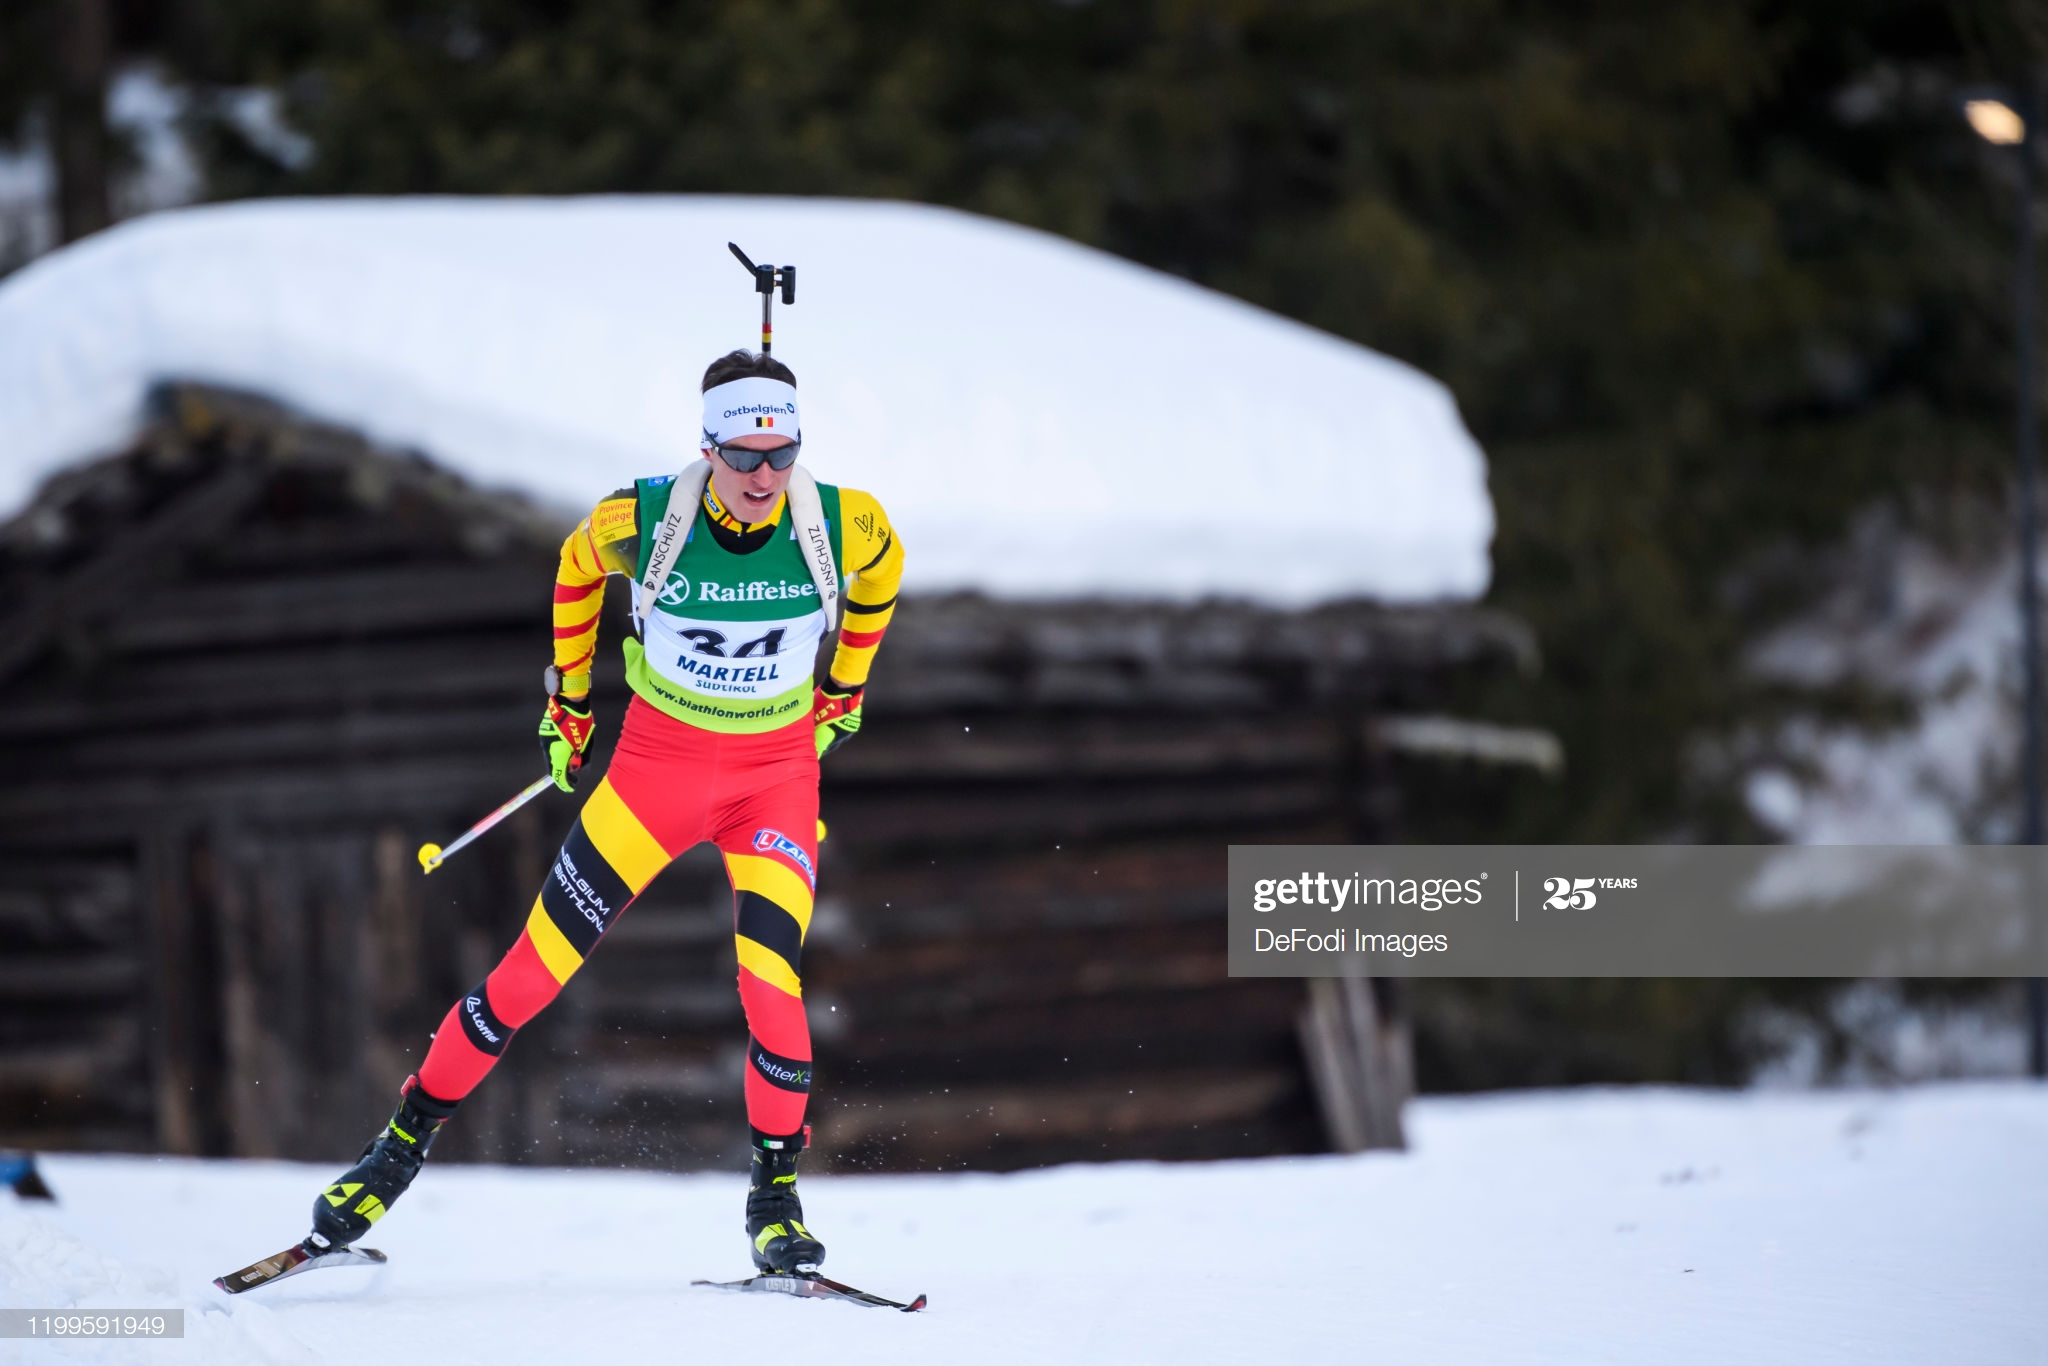 MARTELL-VAL MARTELLO, ITALY - FEBRUARY 08: (BILD ZEITUNG OUT) Pjotr Karel A Dielen of Belgium in action competes during the Men 10 km Sprint Competition of the IBU Cup Biathlon Martell-Val Martello on February 8, 2020 in Martell-Val Martello, Italy. (Photo by Kevin Voigt/DeFodi Images via Getty Images)